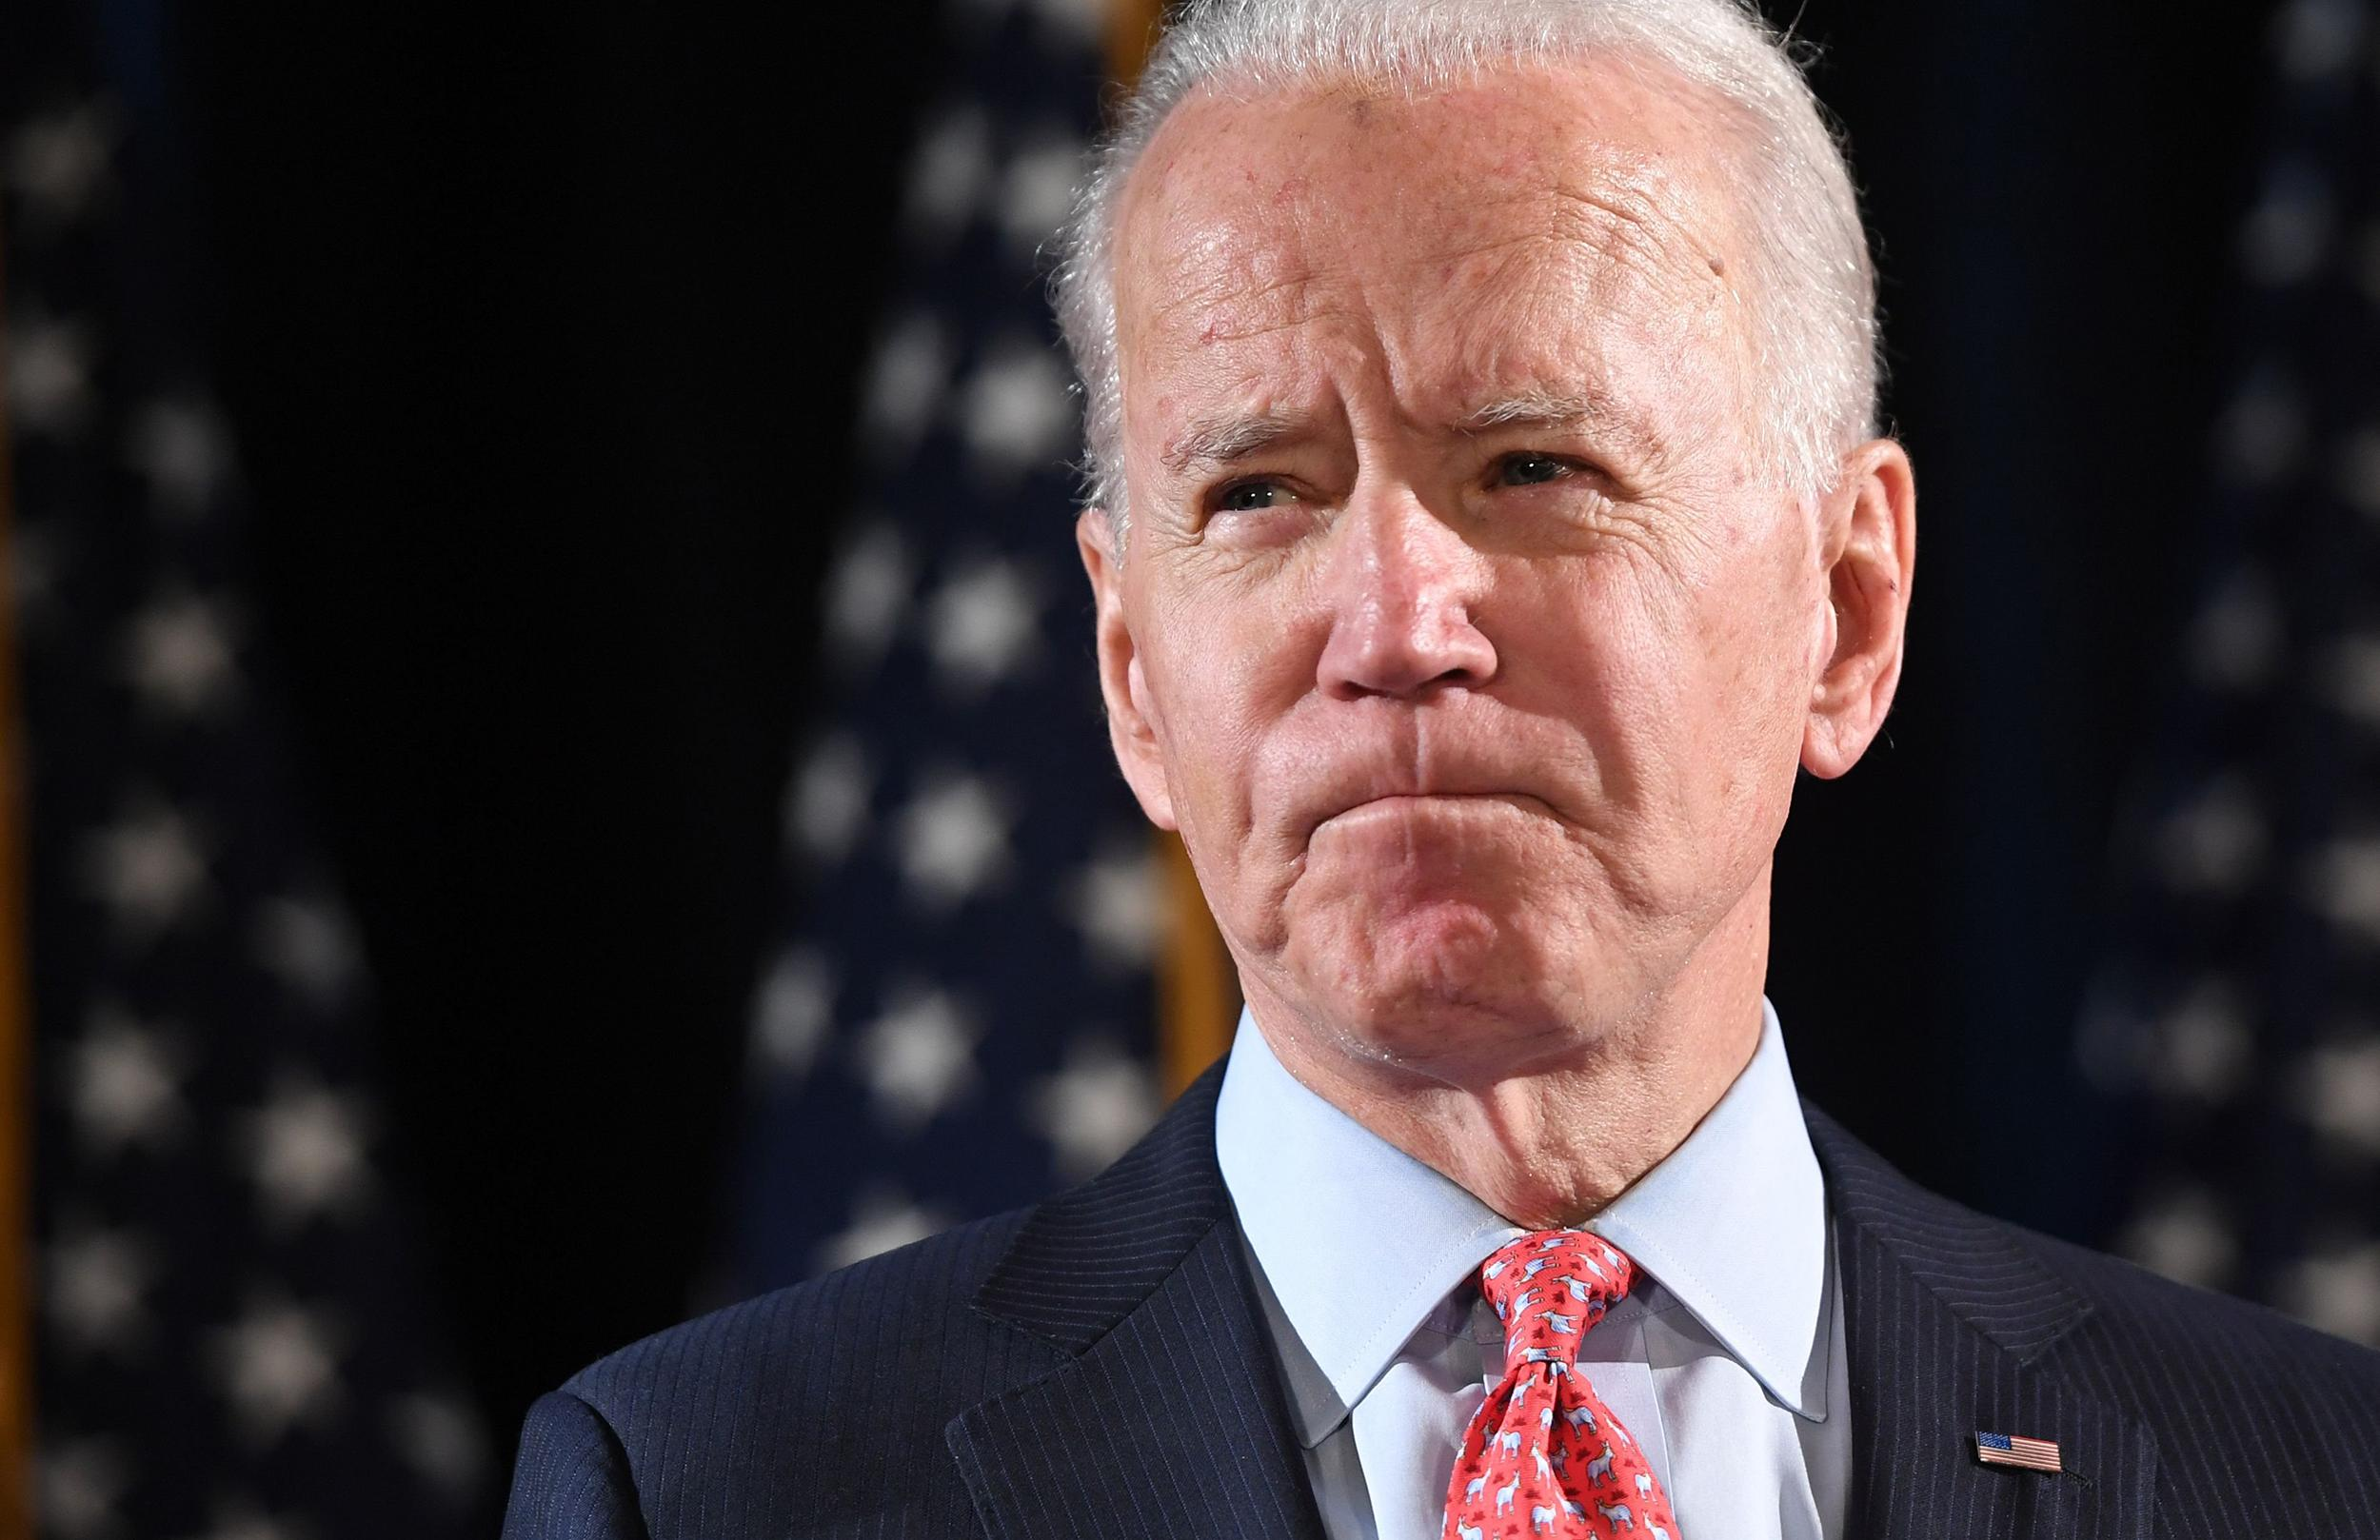 Biden talks to Sanders about moving forward with vetting potential VP candidates